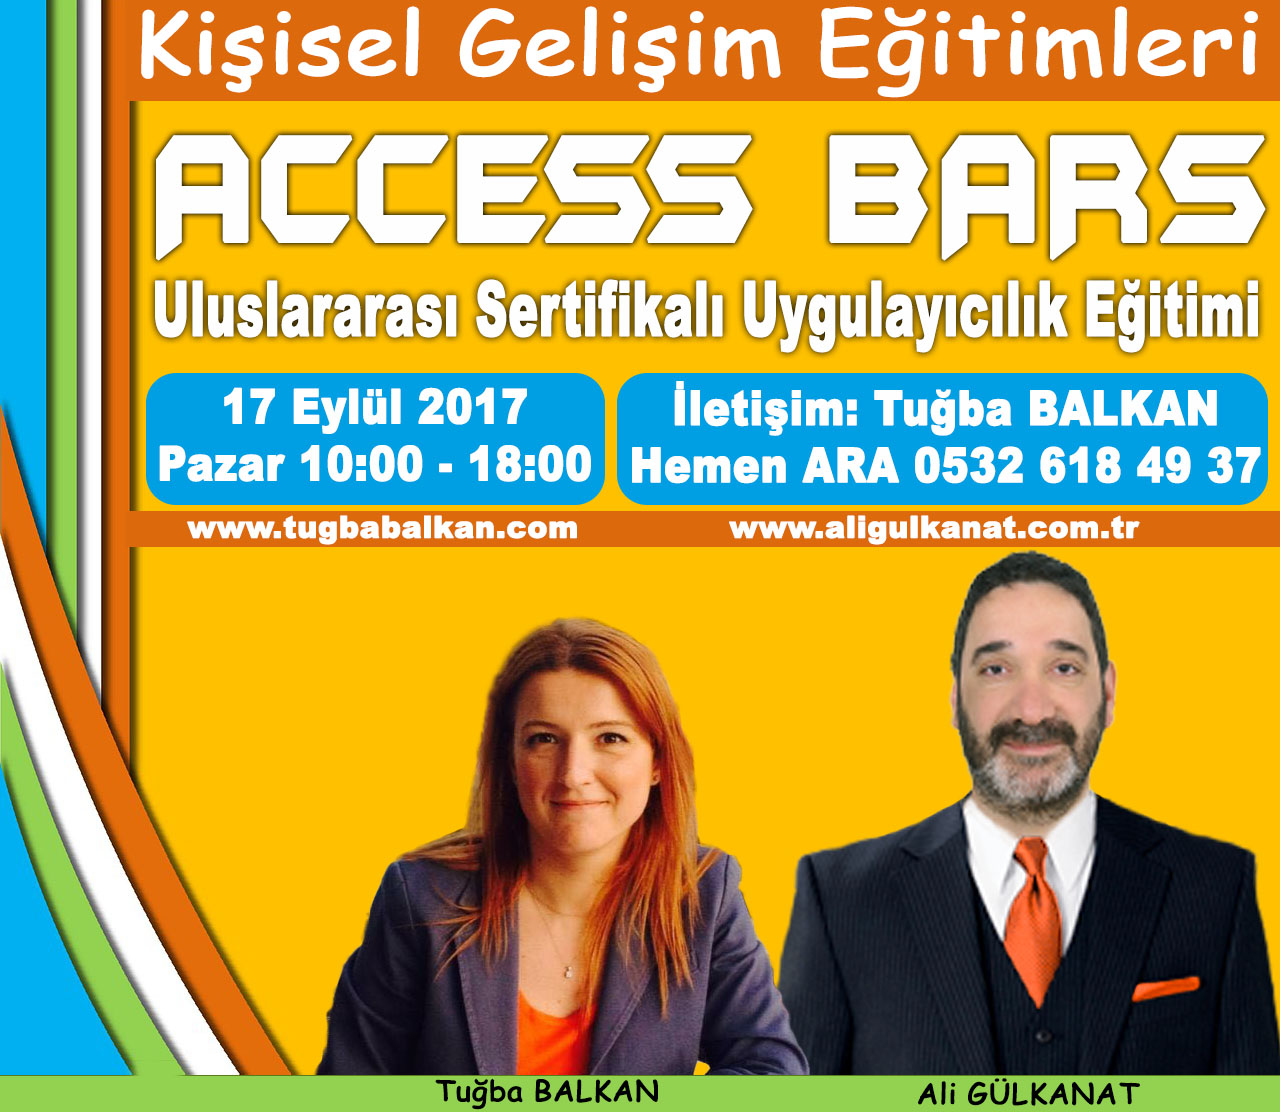 access-bars-tanitim-17-eylul-1